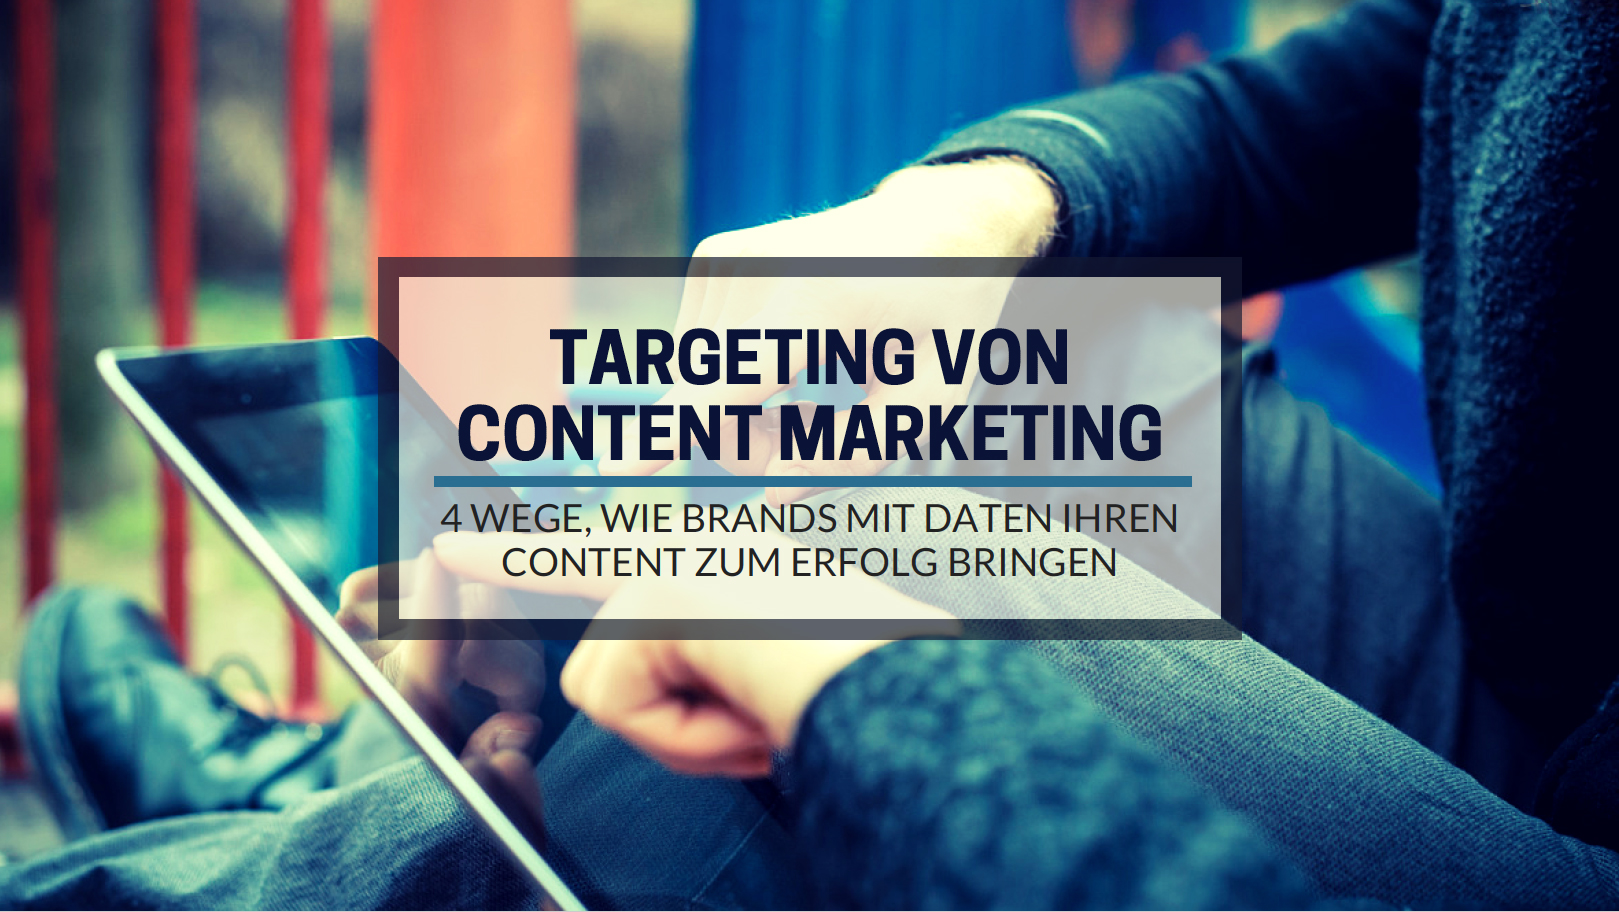 Targeting von Content Marketing